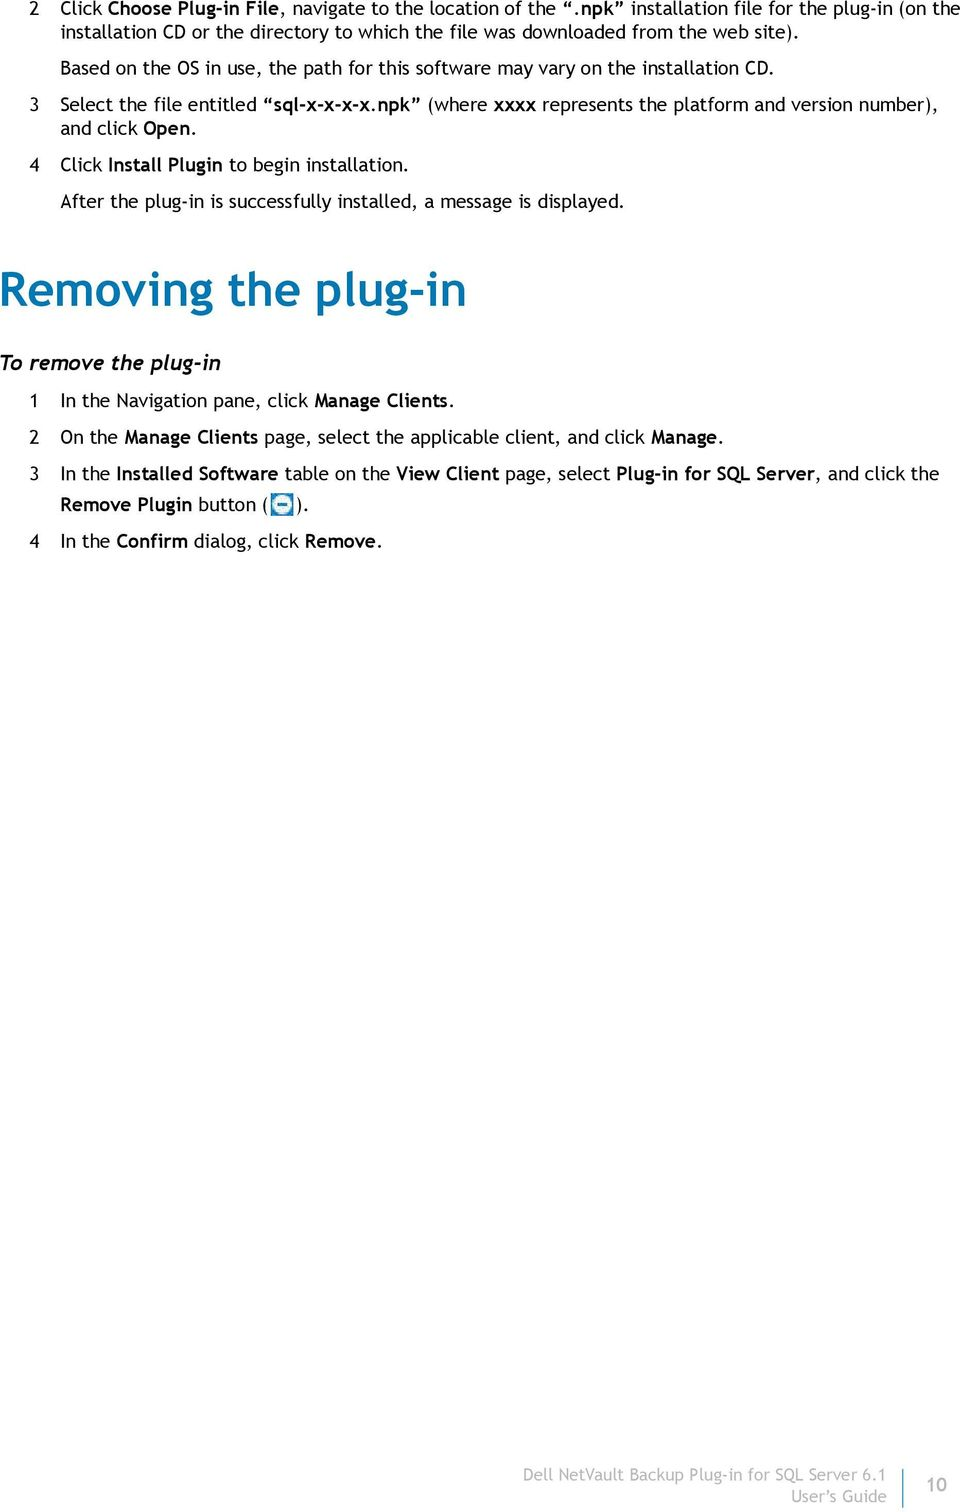 4 Click Install Plugin to begin installation. After the plug-in is successfully installed, a message is displayed.